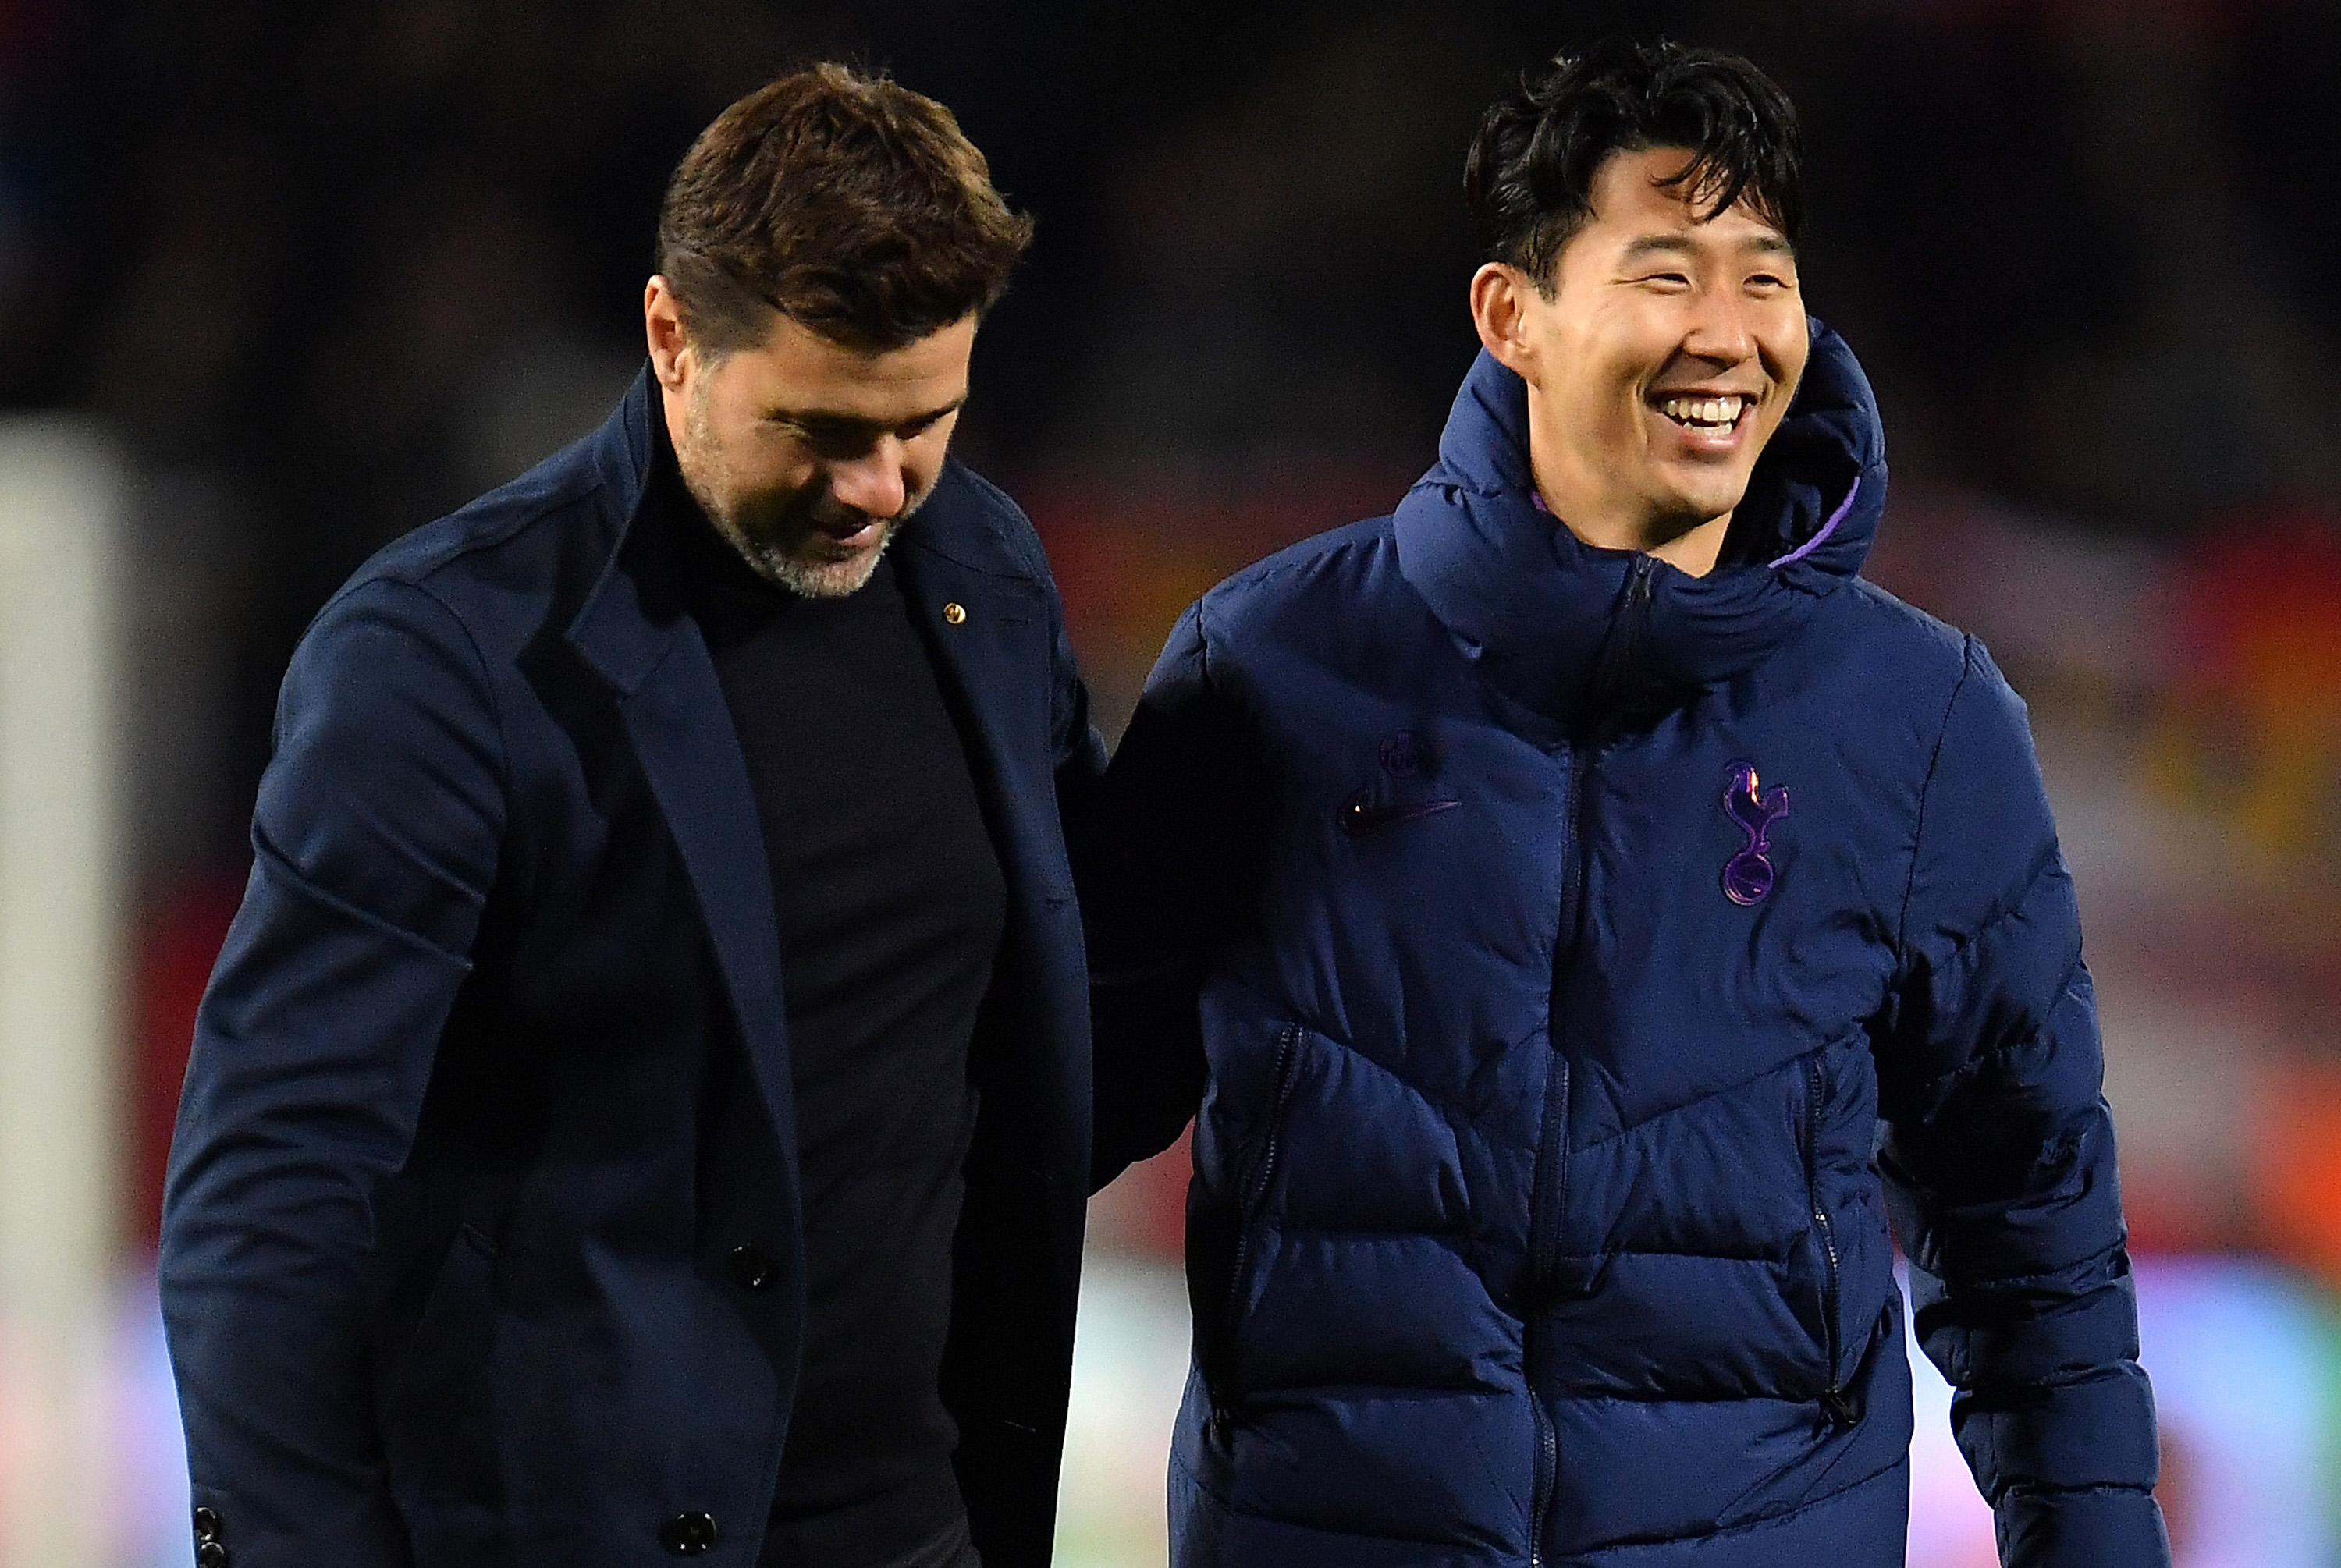 Tottenham boss Mauricio Pochettino congratulates Son Heung-min at the final whistle.